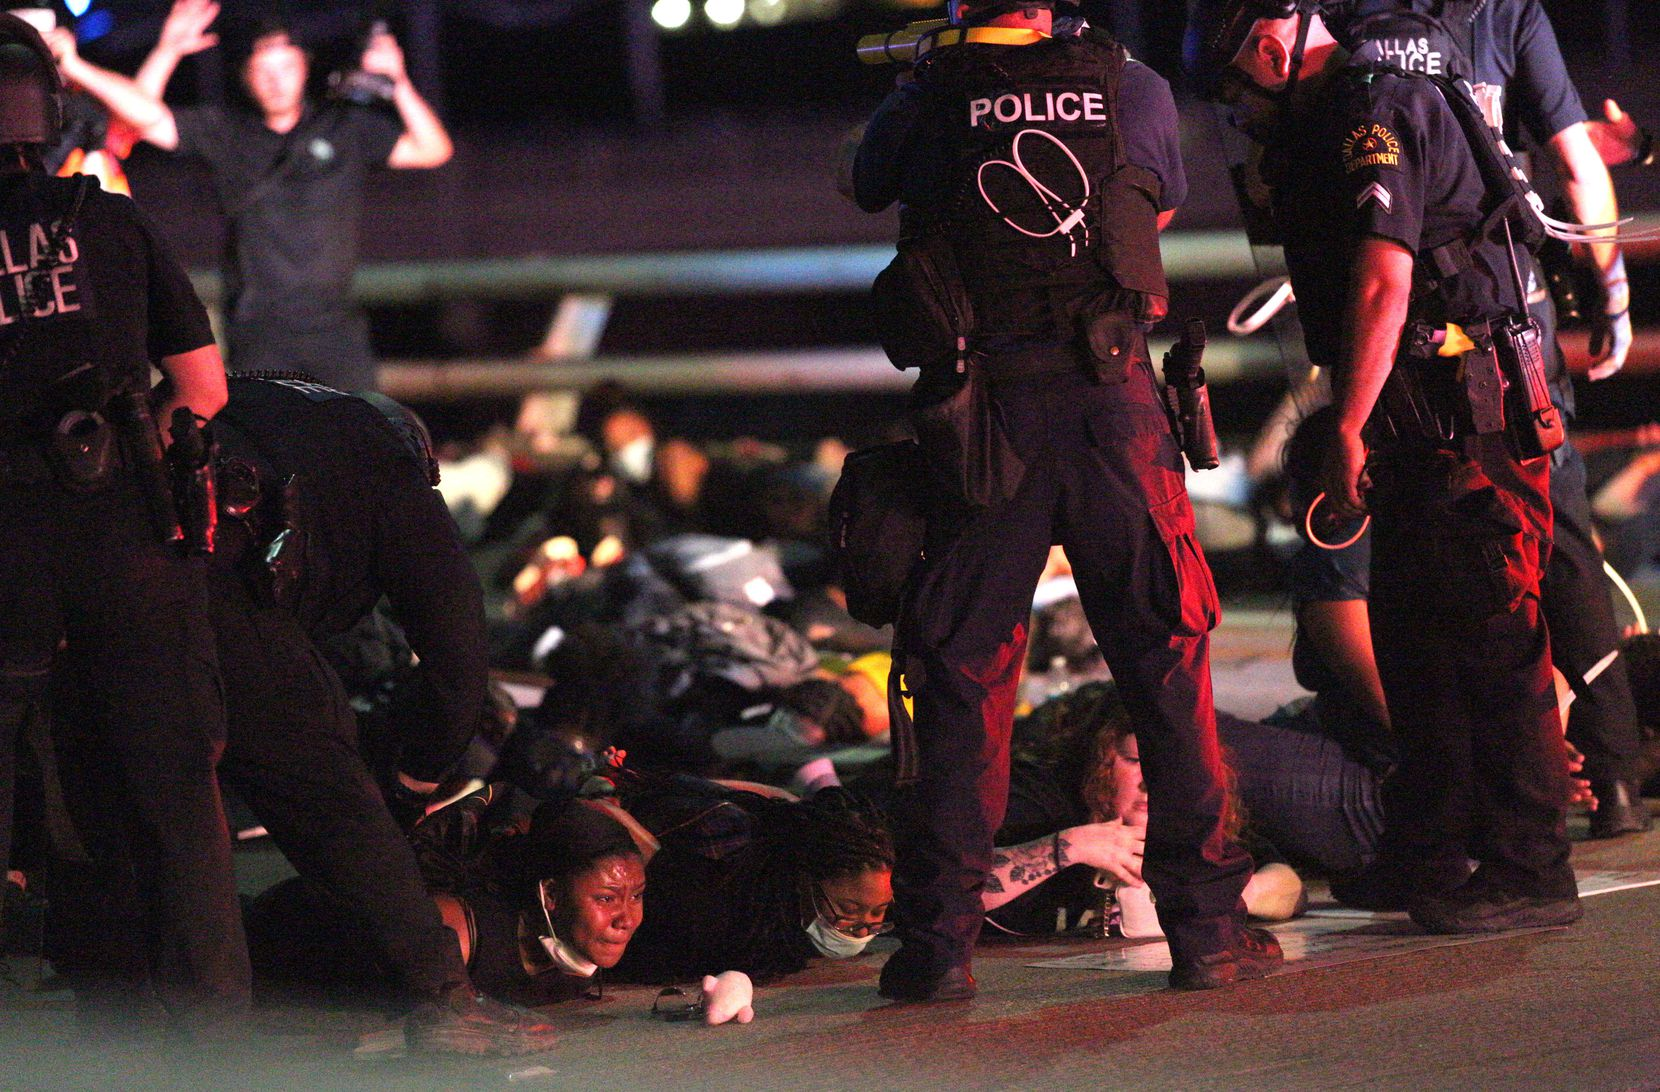 Police forced protesters to lie on the ground on the Margaret Hunt Hill Bridge while making arrests during the June 1 demonstration against police brutality.